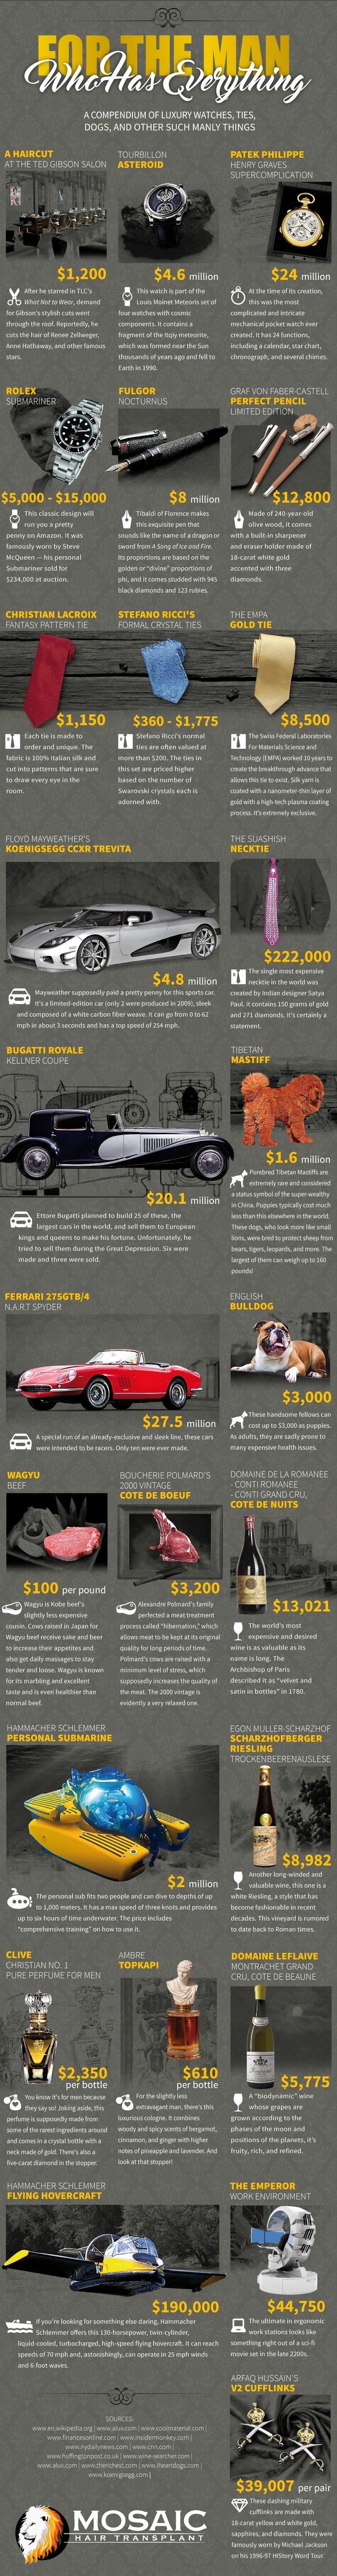 For the Man Who Has Everything #Infographic